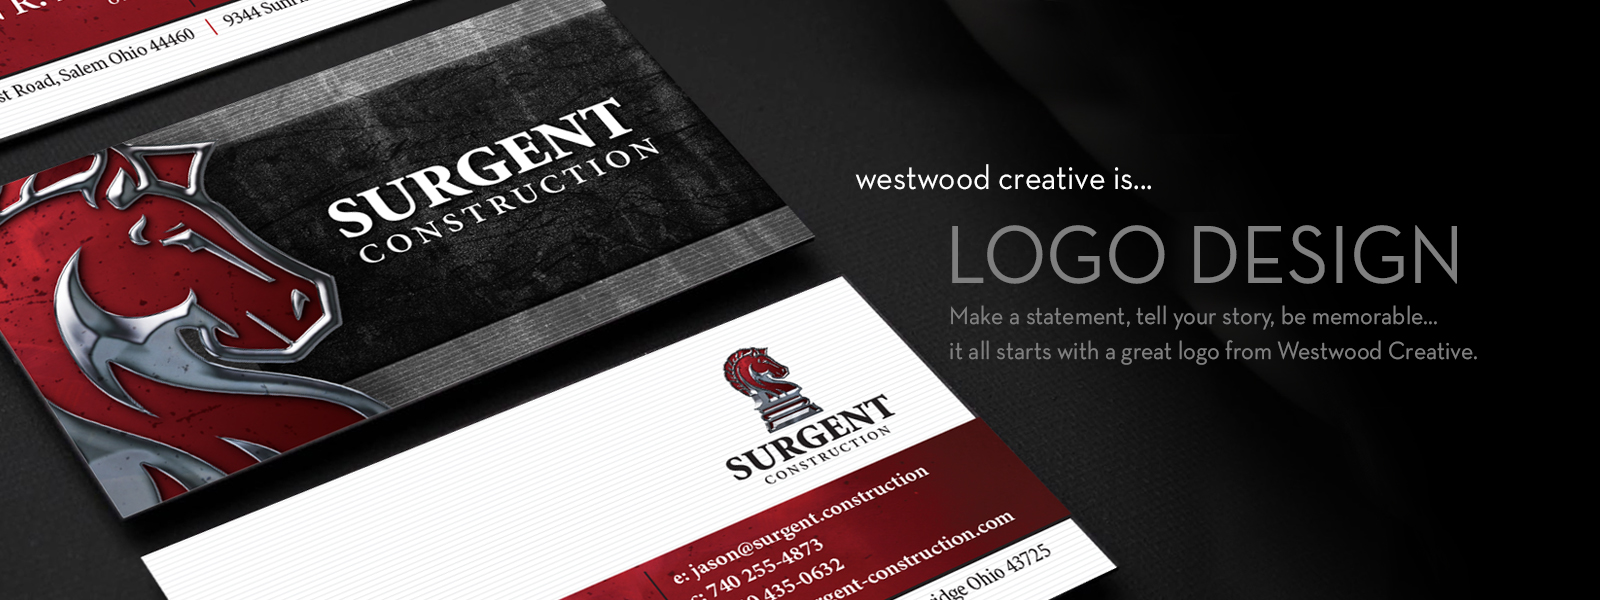 Westwood Creative Logo Design Header